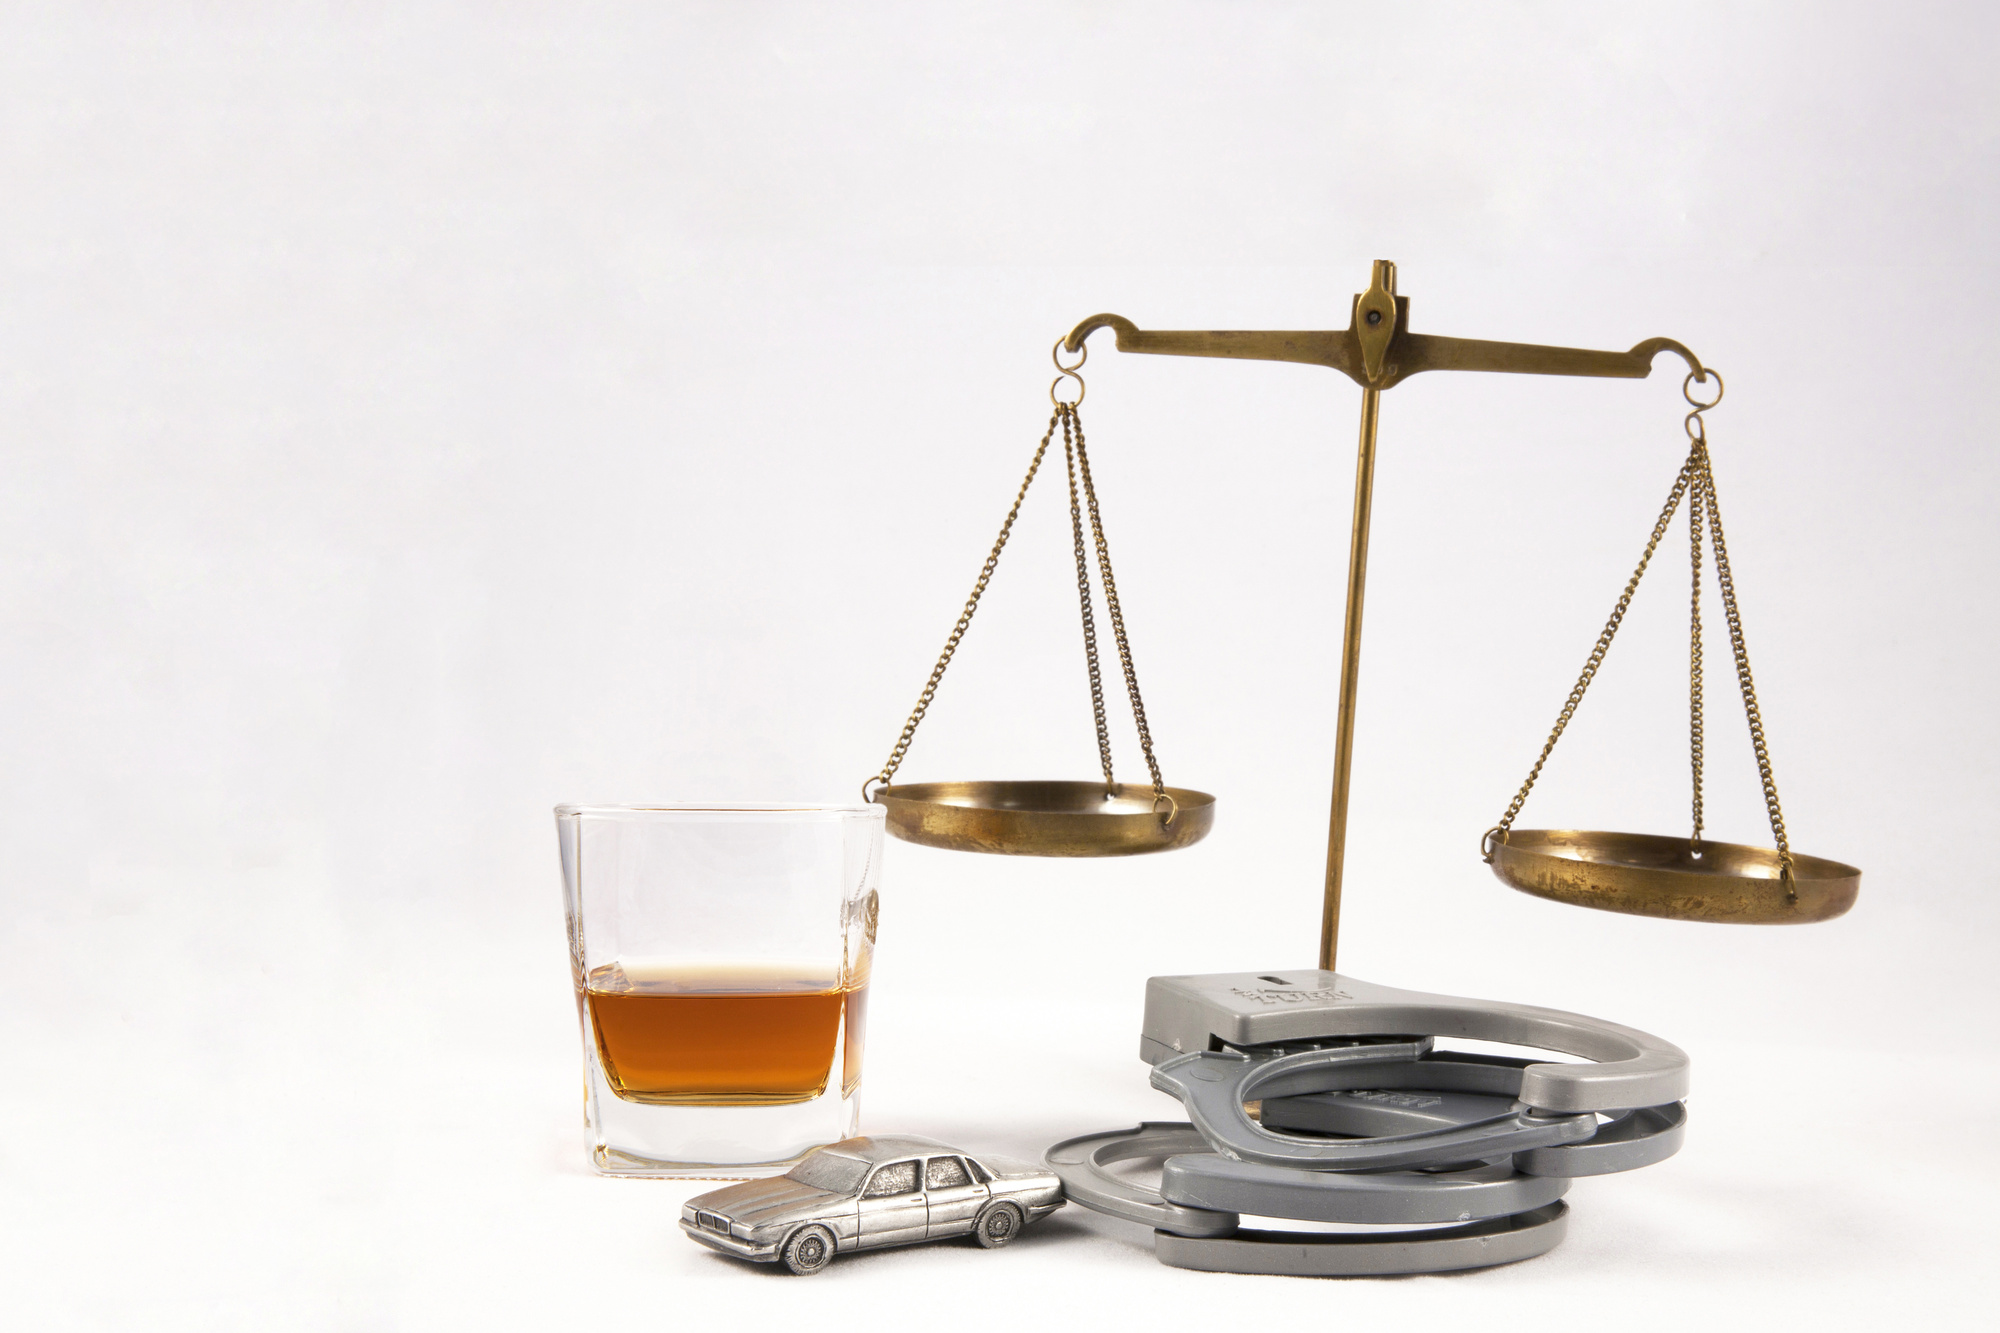 What to Expect from a DWI Lawyer Consultation